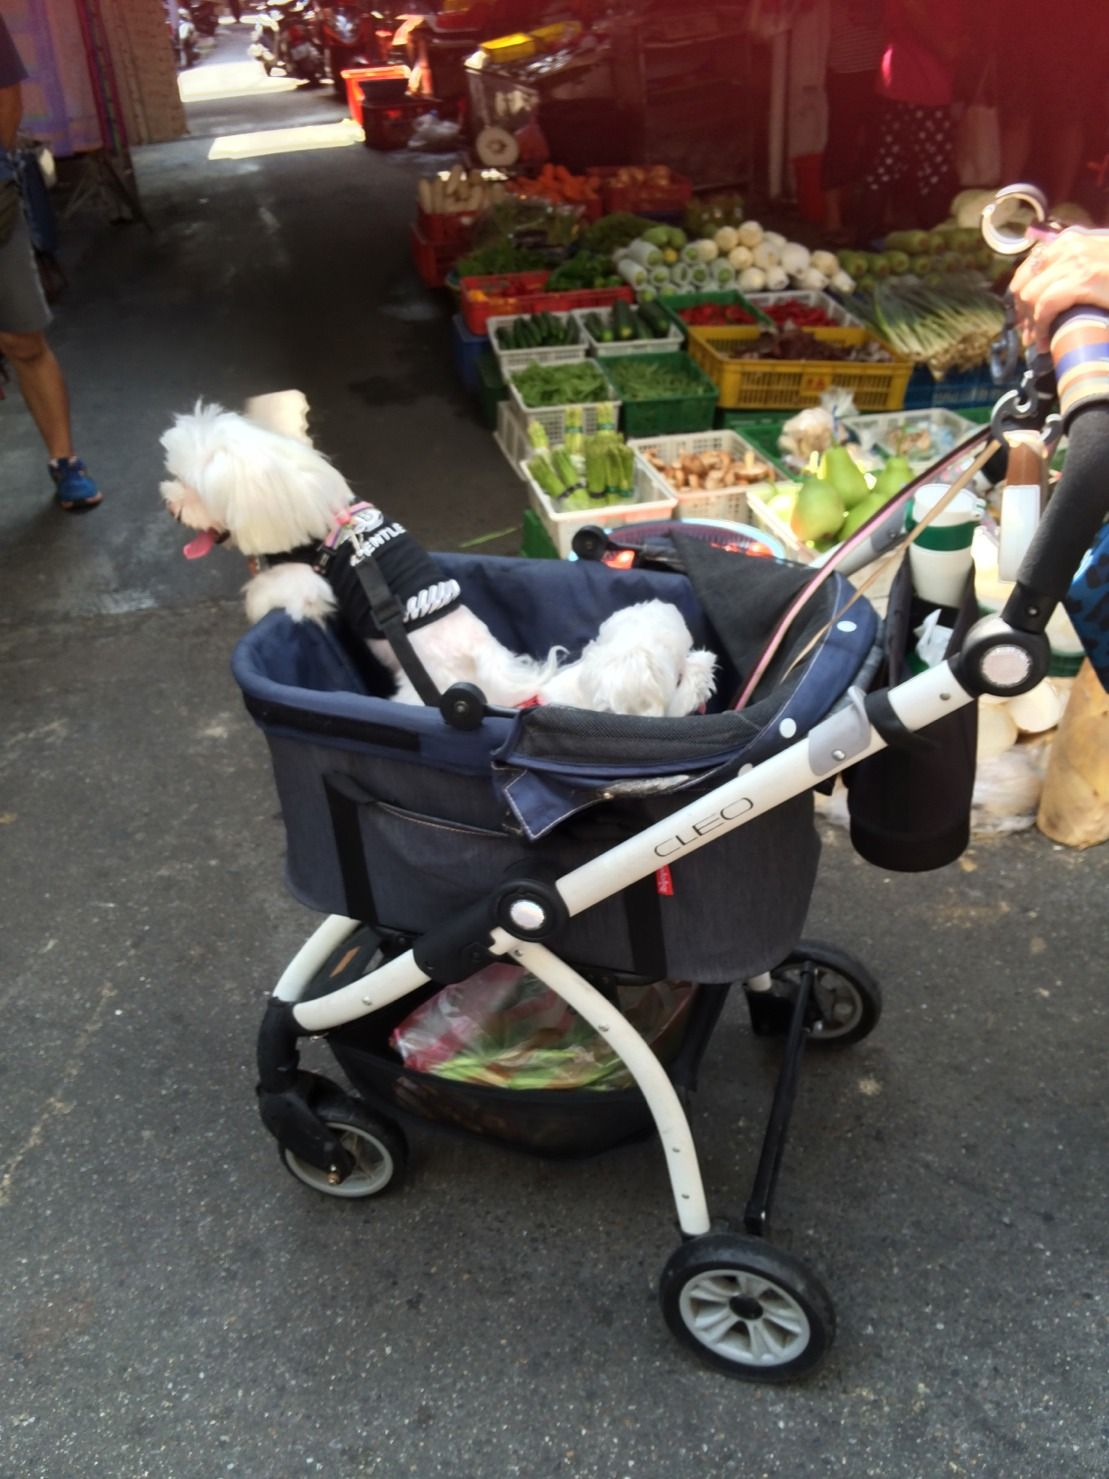 Not just a pet stroller but also a shopping cart...